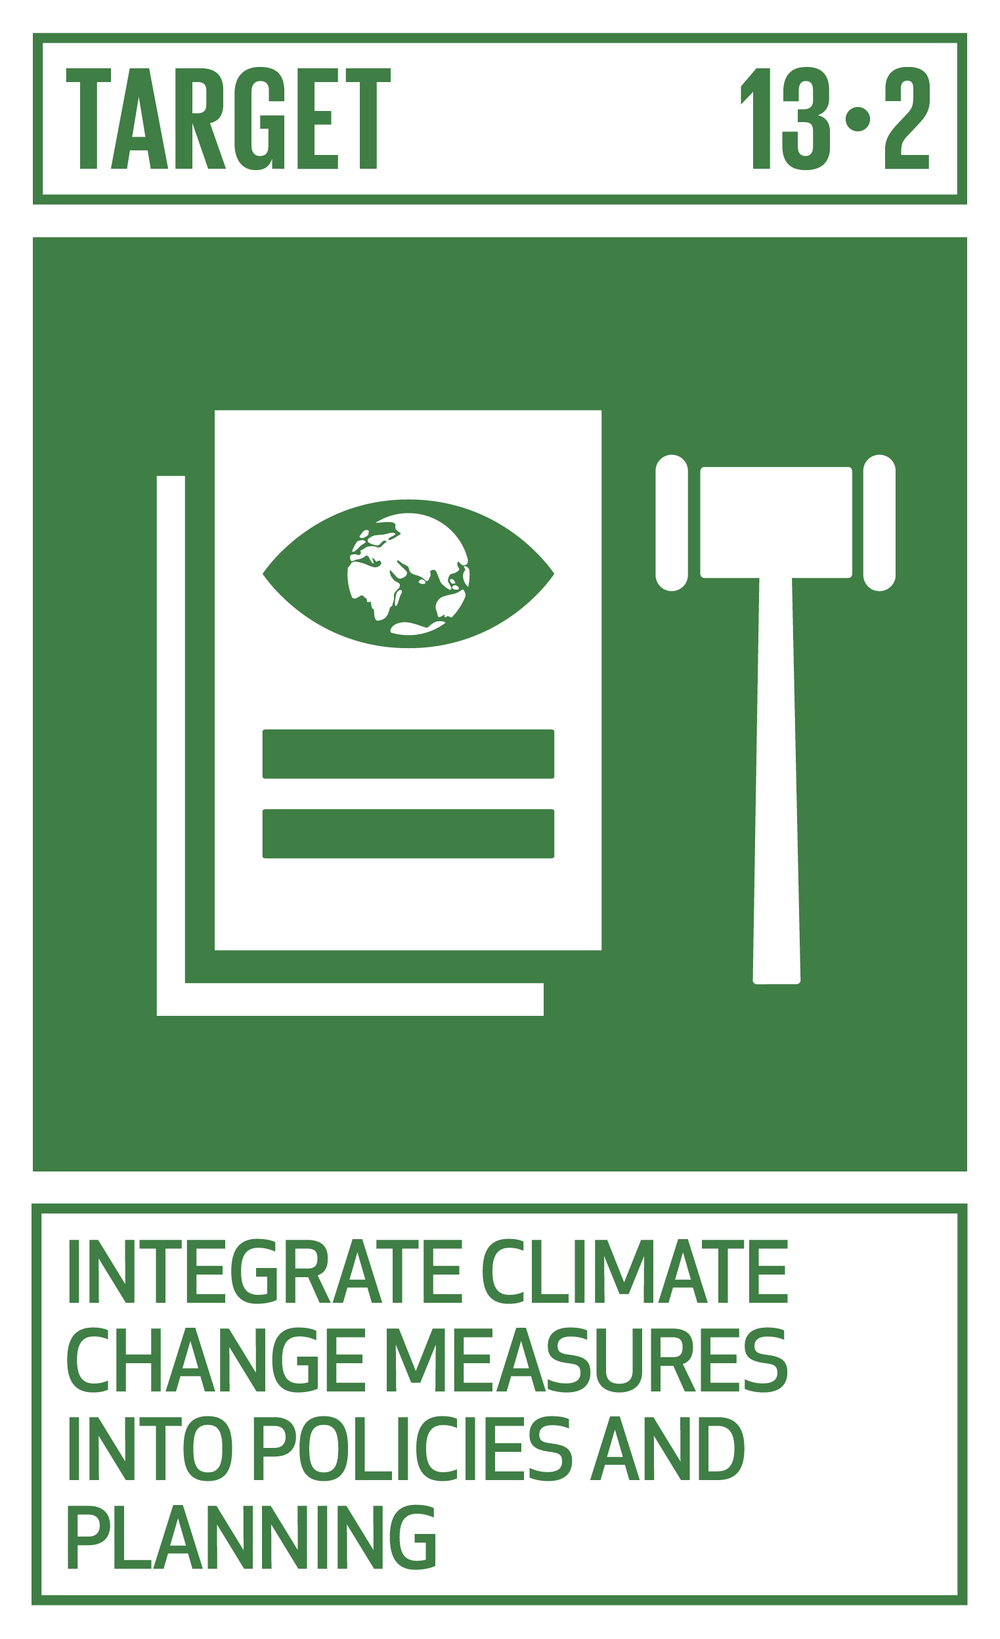 Integrate climate change measures into national policies, strategies and planning.   INDICATOR    13.2.1  Number of countries that have communicated the establishment or operationalization of an integrated policy/strategy/plan which increases their ability to adapt to the adverse impacts of climate change, and foster climate resilience and low greenhouse gas emissions development in a manner that does not threaten food production (including a national adaptation plan, nationally determined contribution, national communication, biennial update report or other)